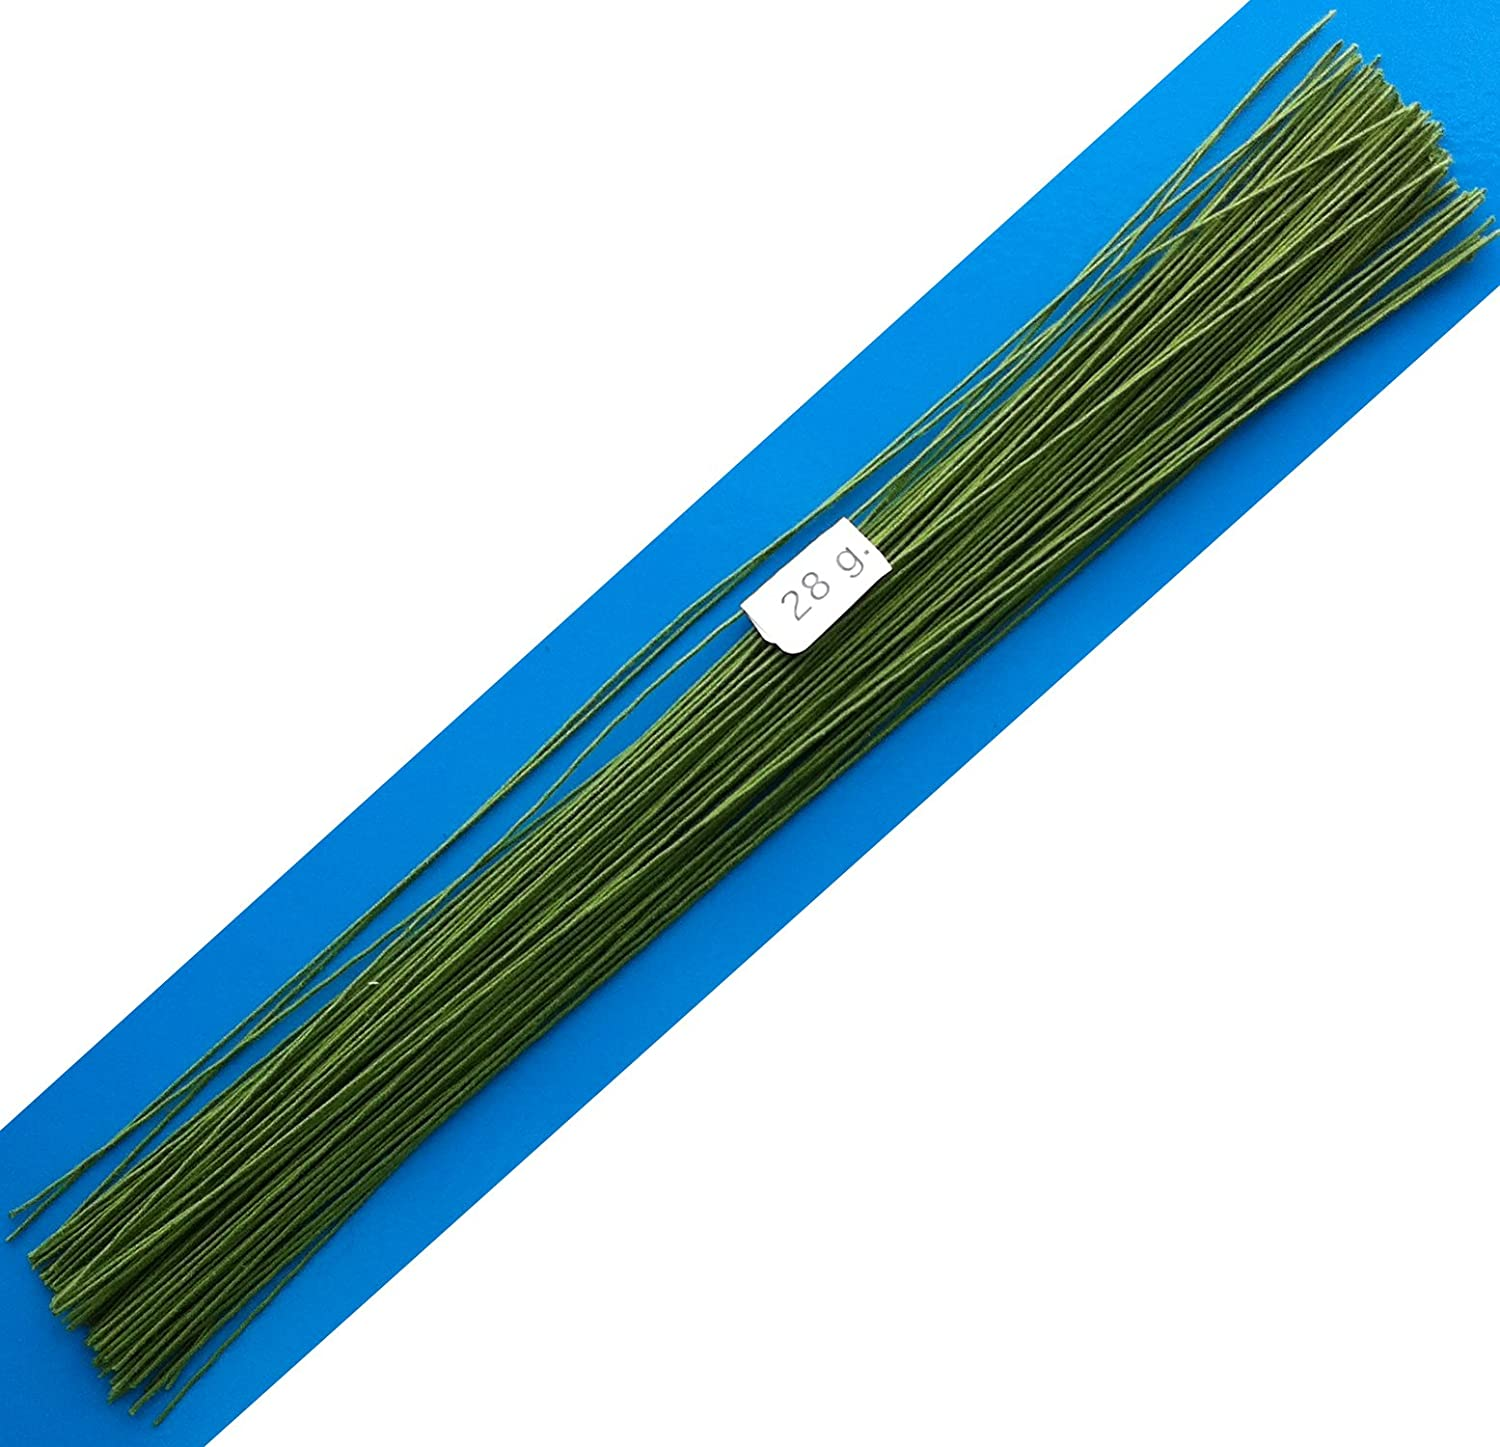 Amazon.com: 28 Gauge Green Cotton Covered Floral Wire - 100 feet per ...